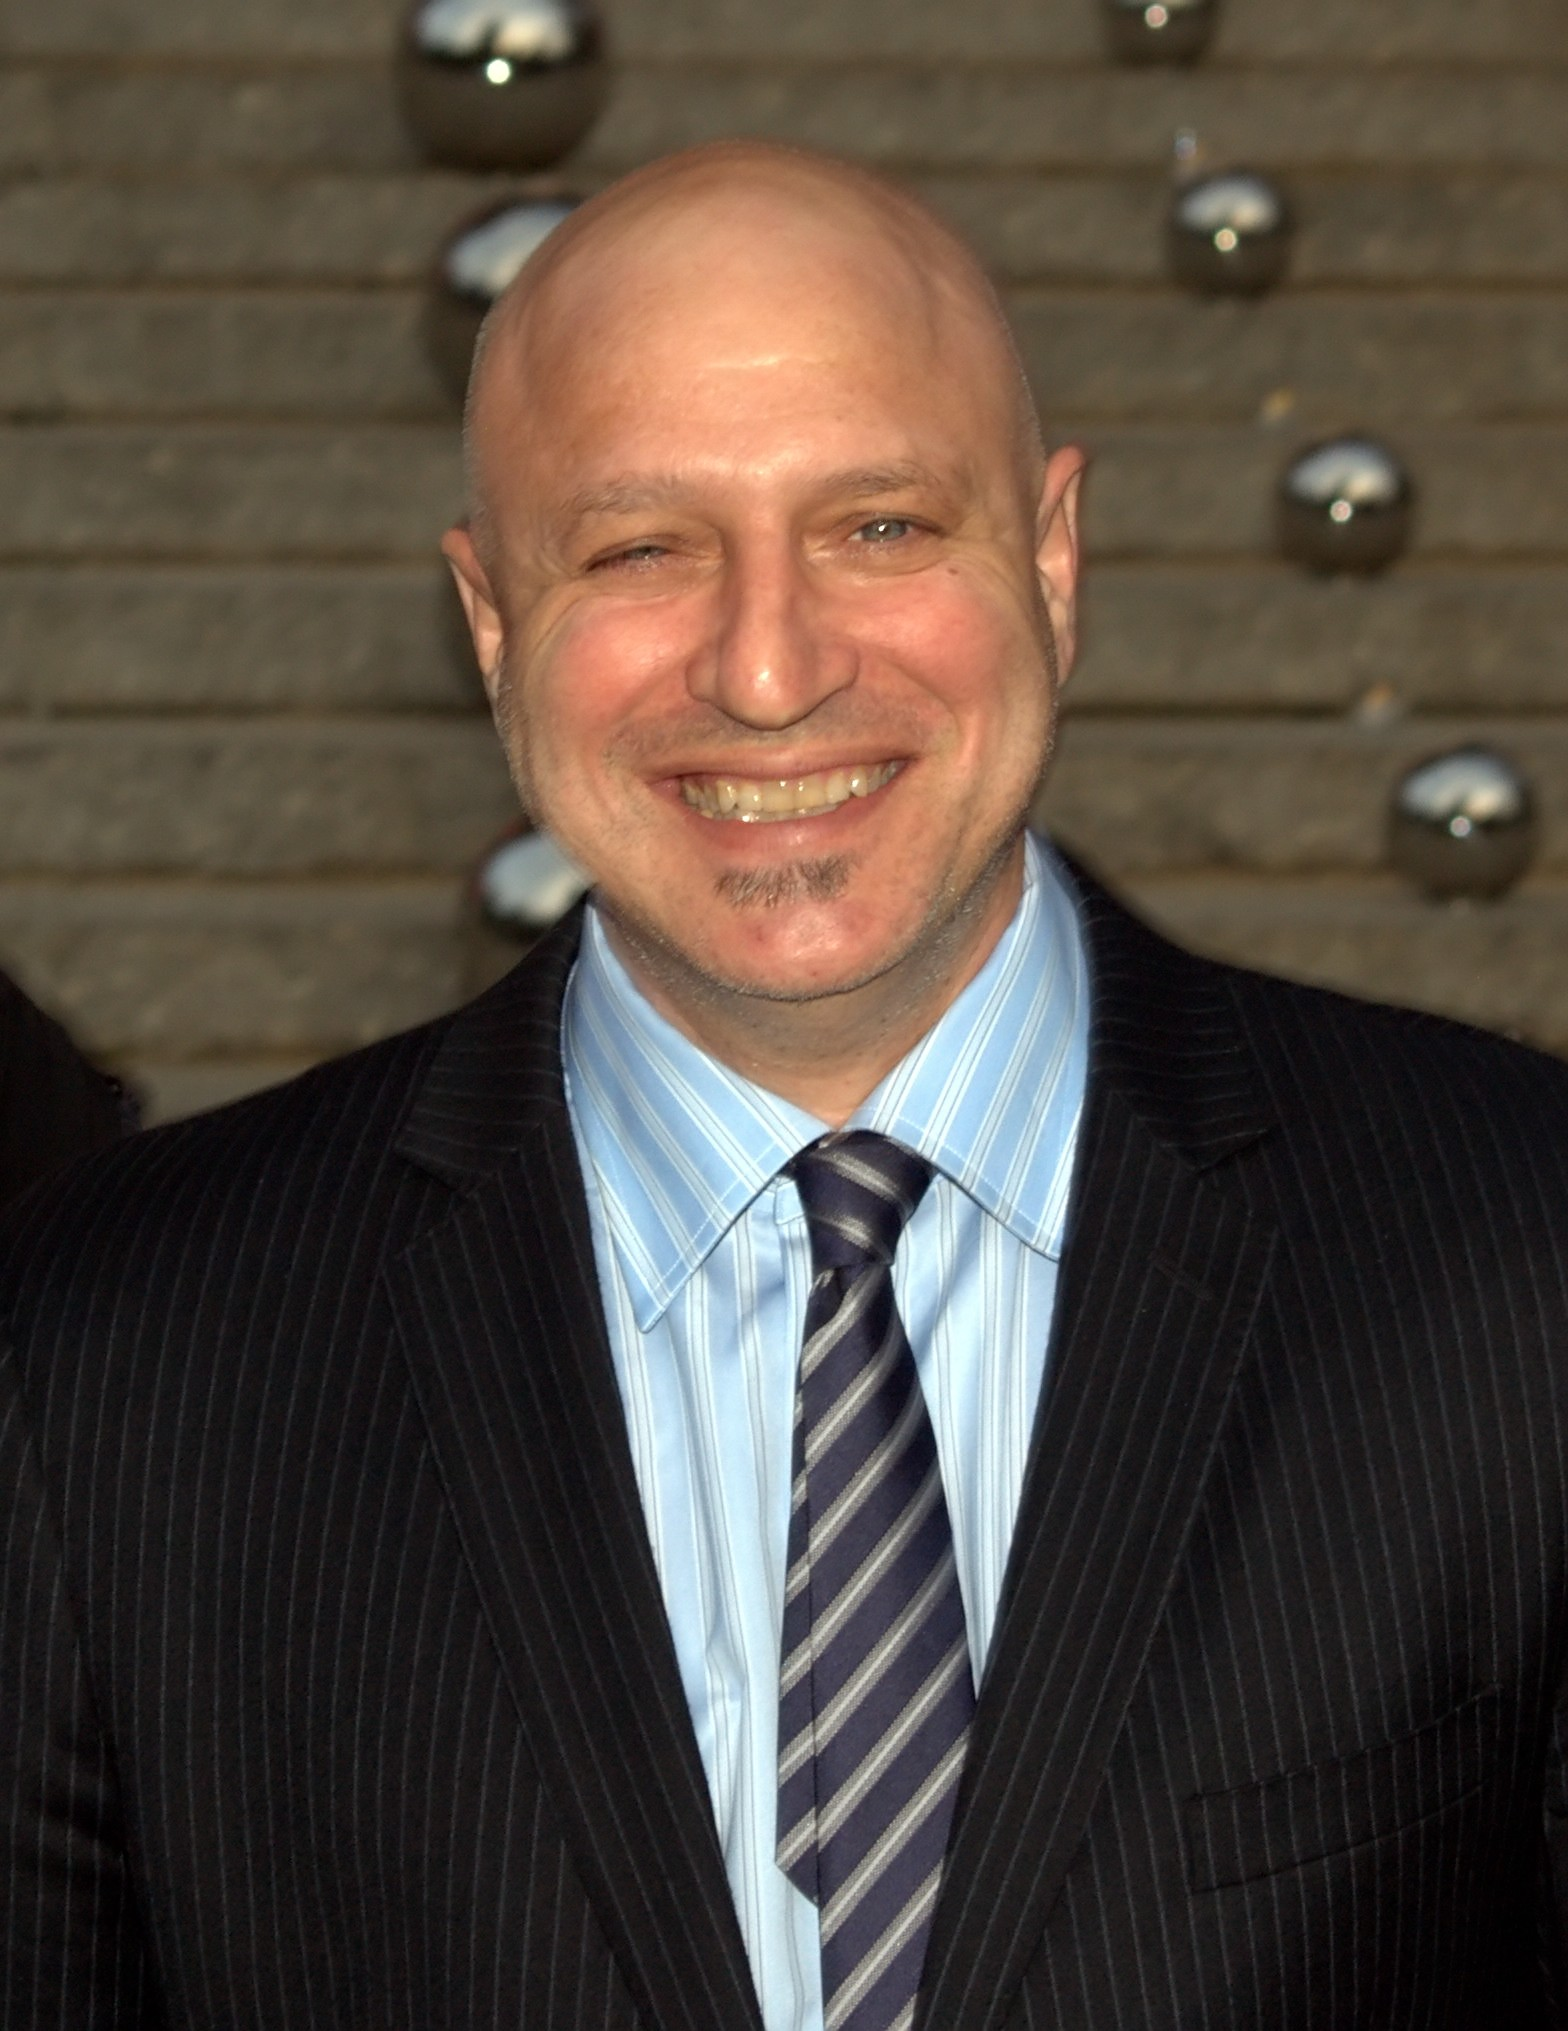 The 56-year old son of father Thomas Colicchio and mother Beverly Colicchio Tom Colicchio in 2018 photo. Tom Colicchio earned a  million dollar salary - leaving the net worth at 20 million in 2018